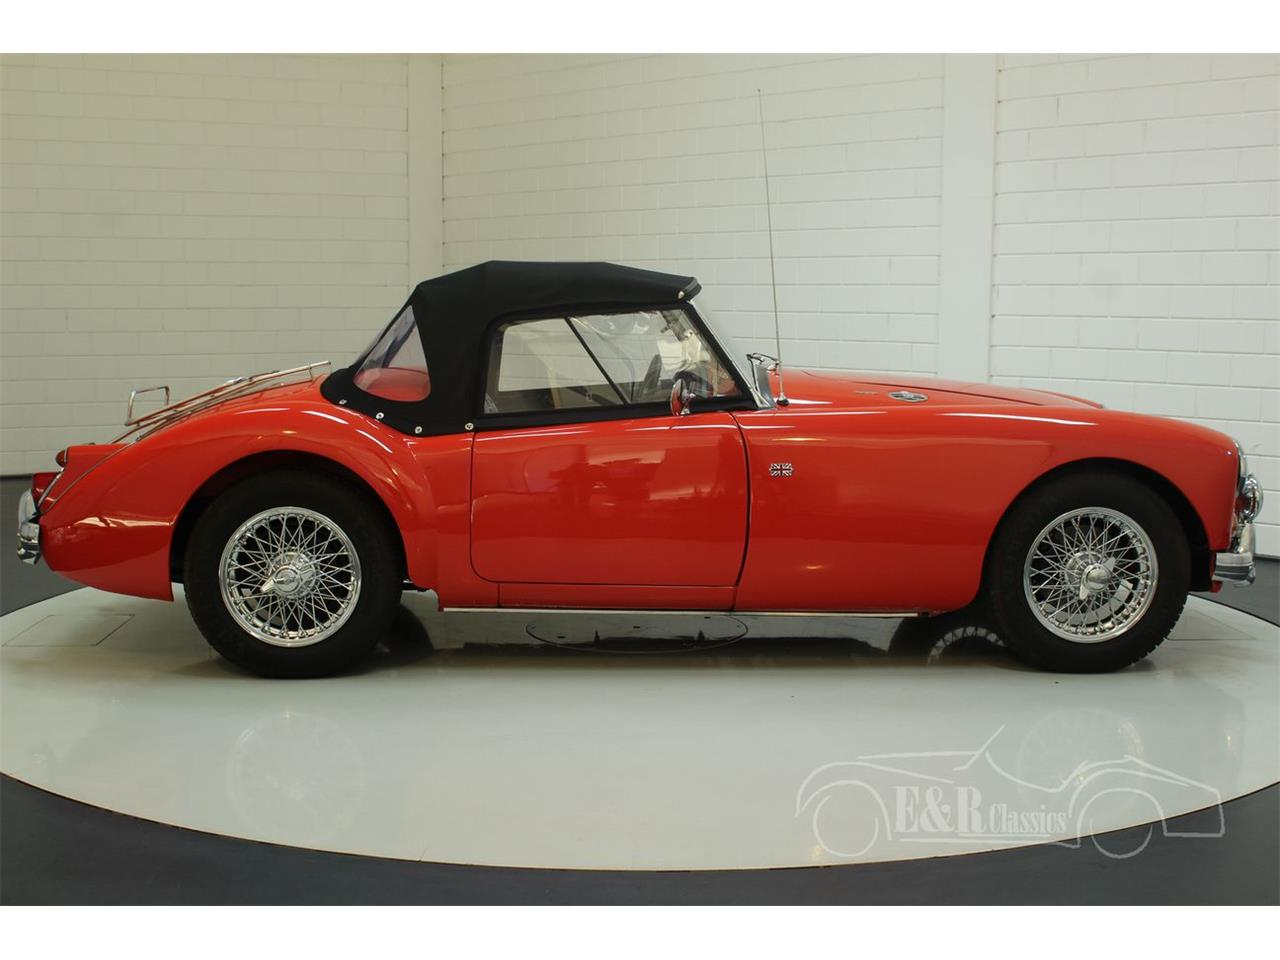 Large Picture of Classic 1962 MGA located in Waalwijk noord brabant - $44,900.00 Offered by E & R Classics - Q2W8